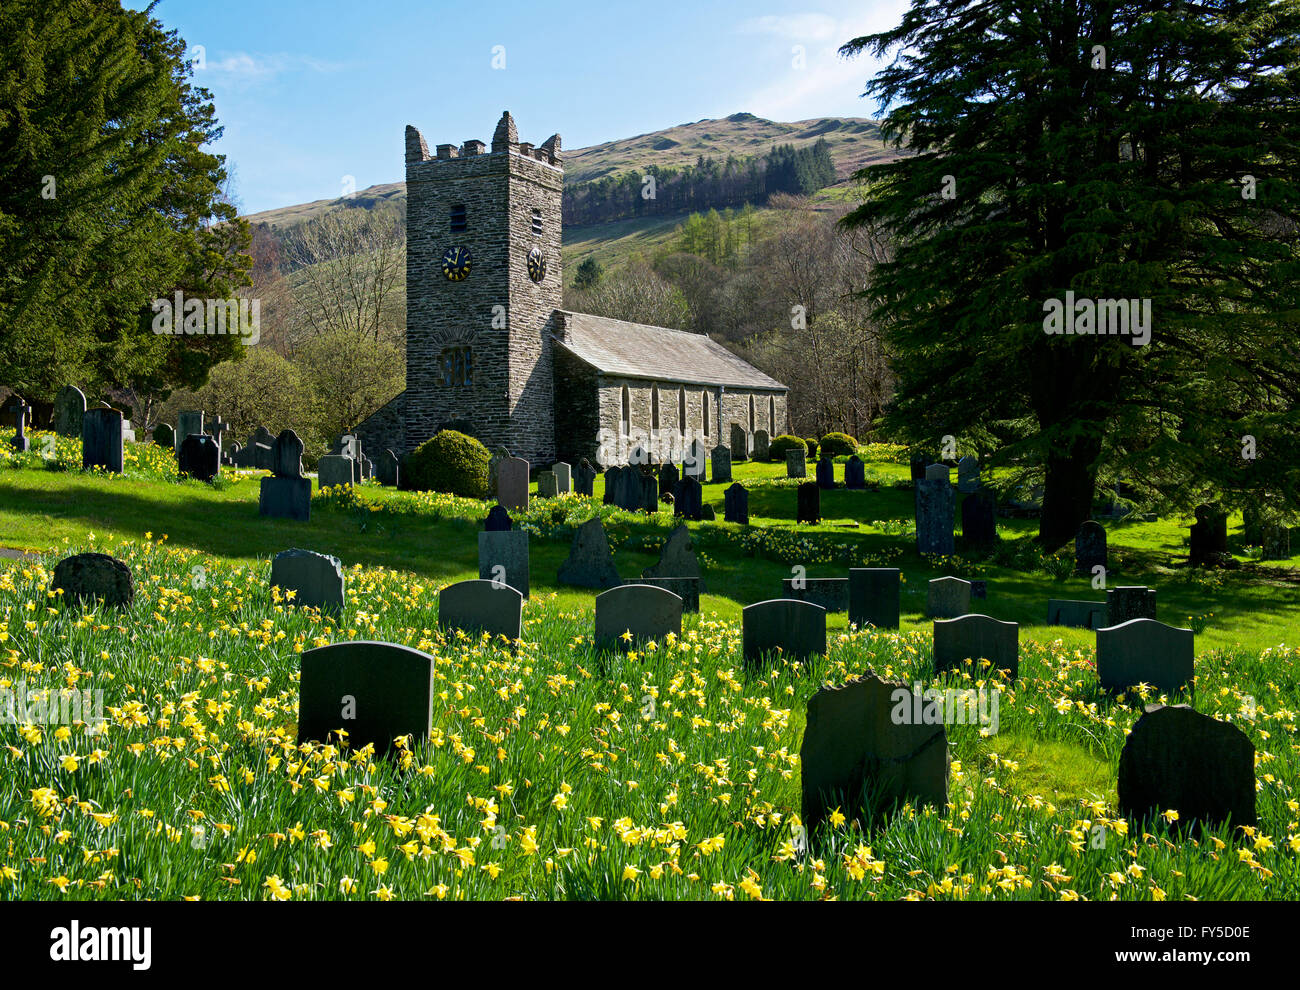 Jesus Church, Troutbeck, Lake District National Park, Cumbria, England UK Stock Photo